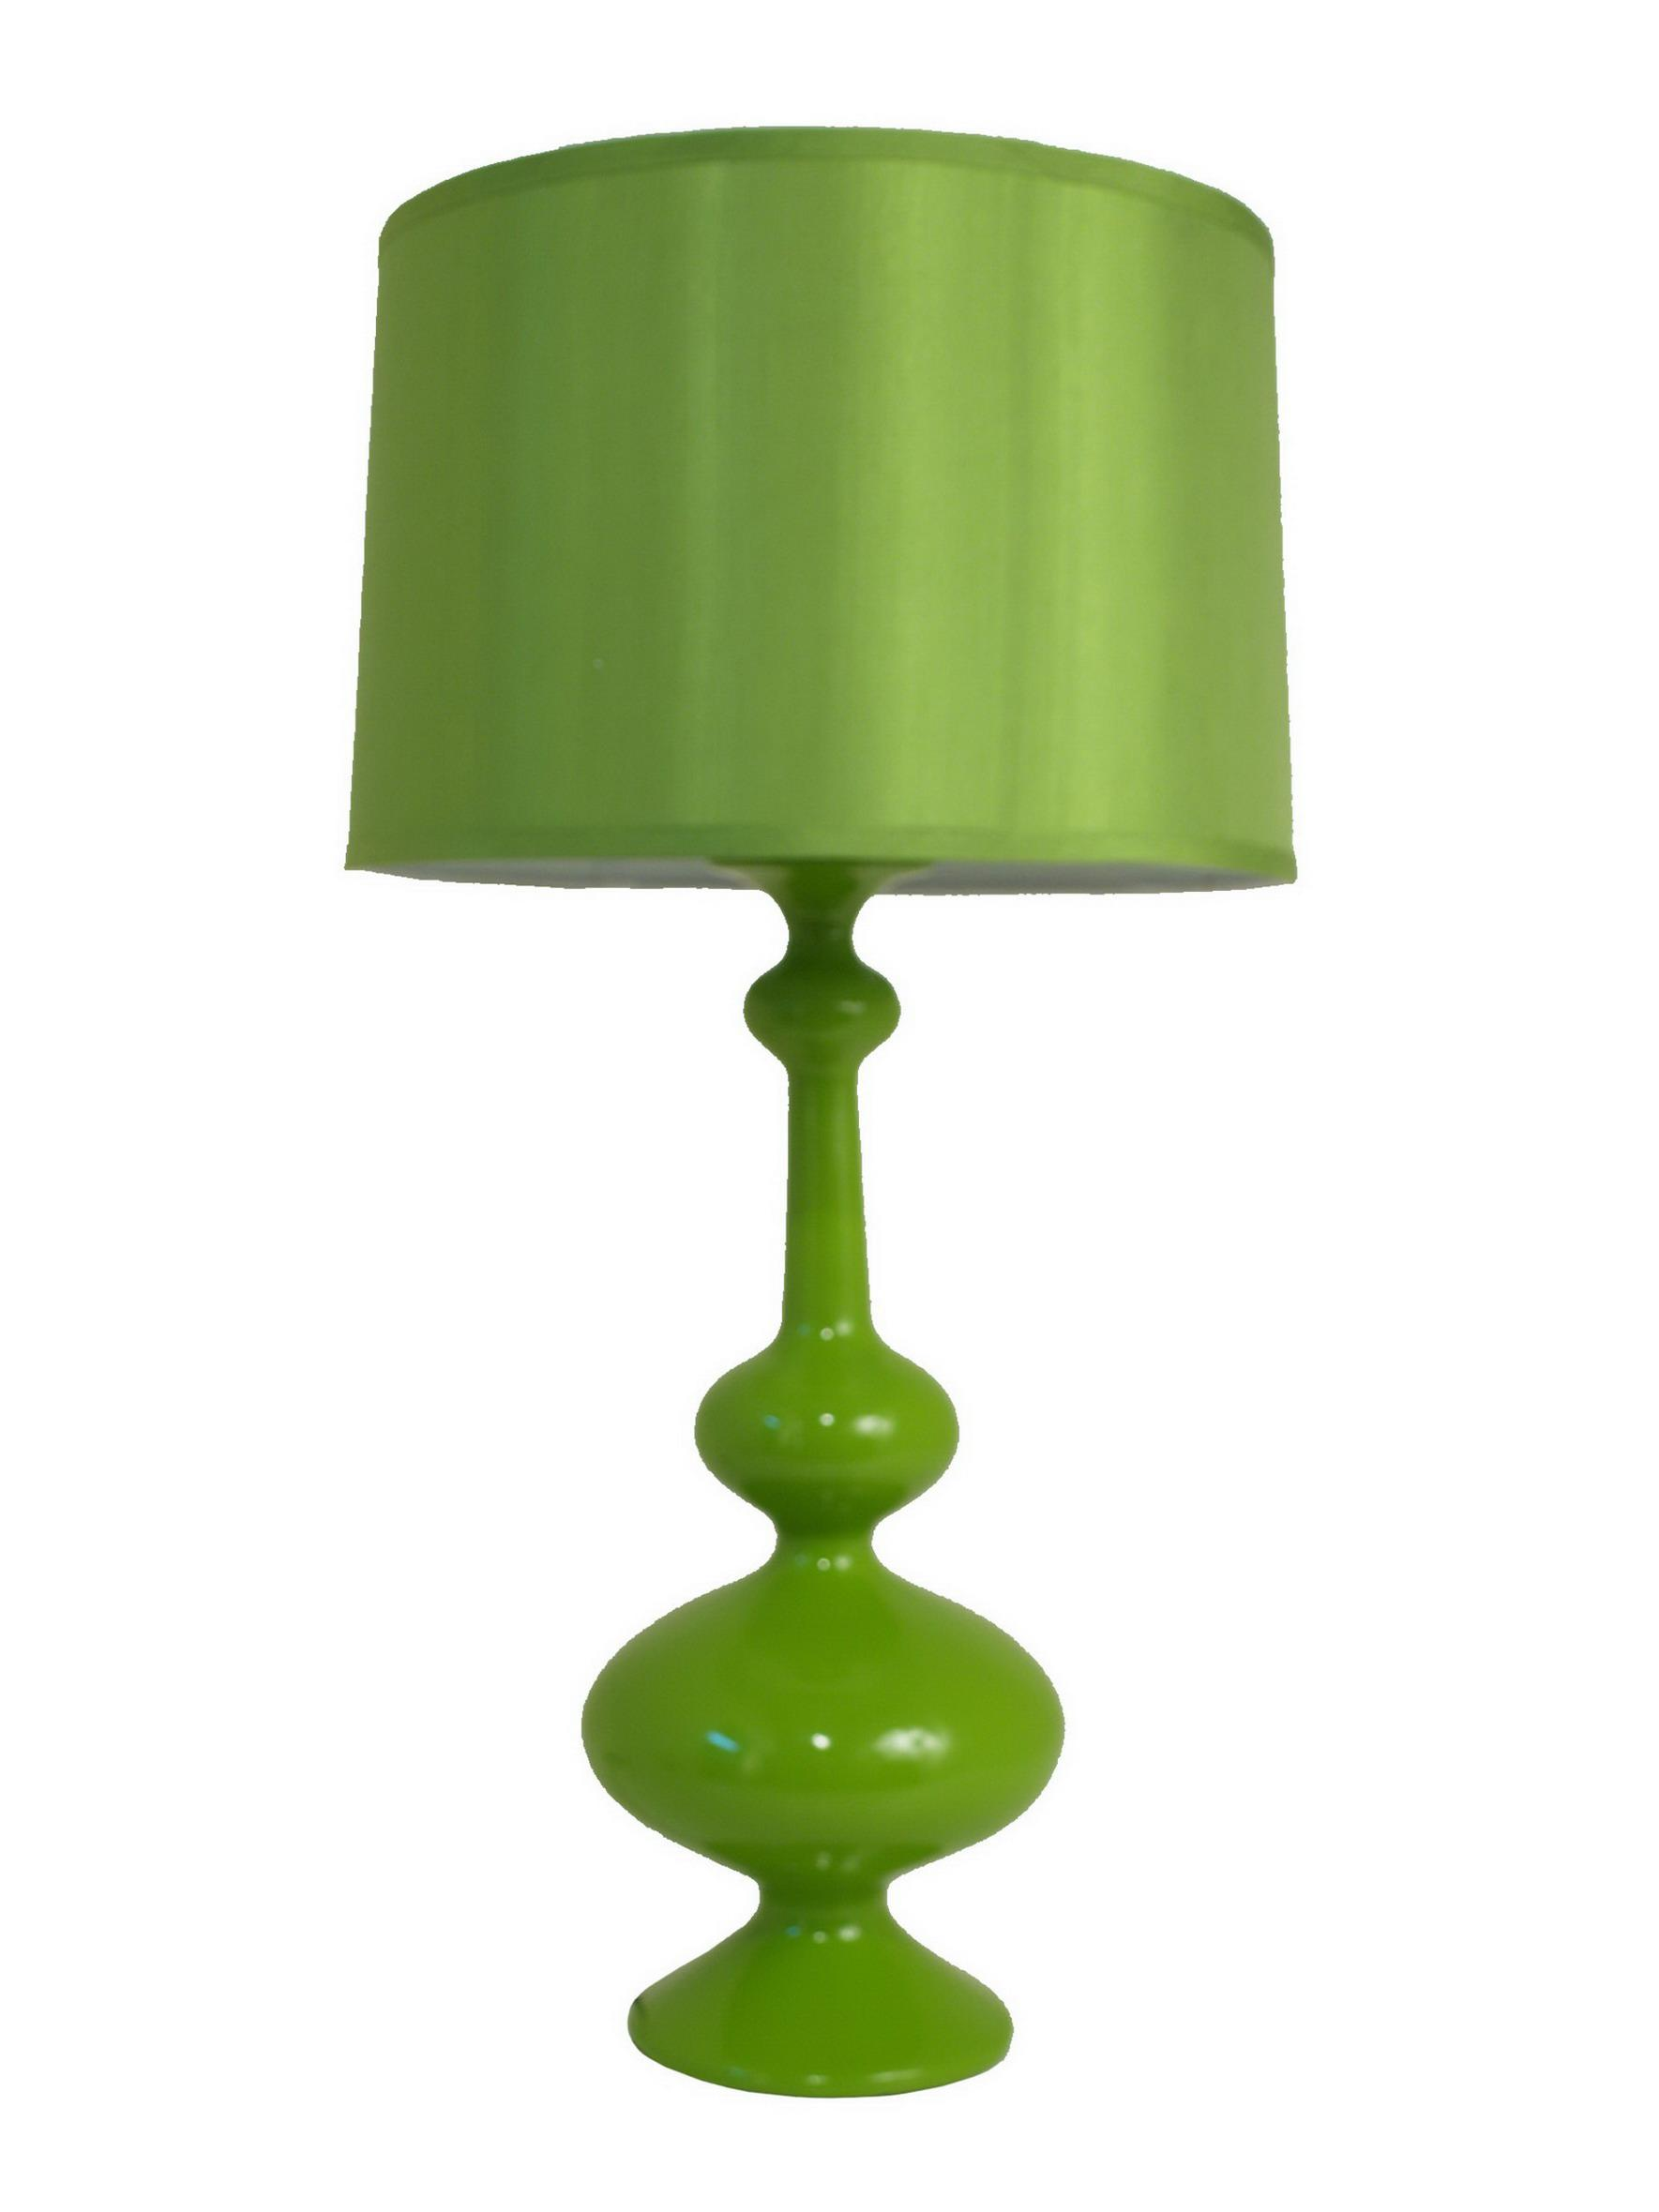 lamp designer lime accent table excellent contemporary halsey only bedside base delectable green for movies lamps teardrop lampshades glass lighting metal shades brown full size